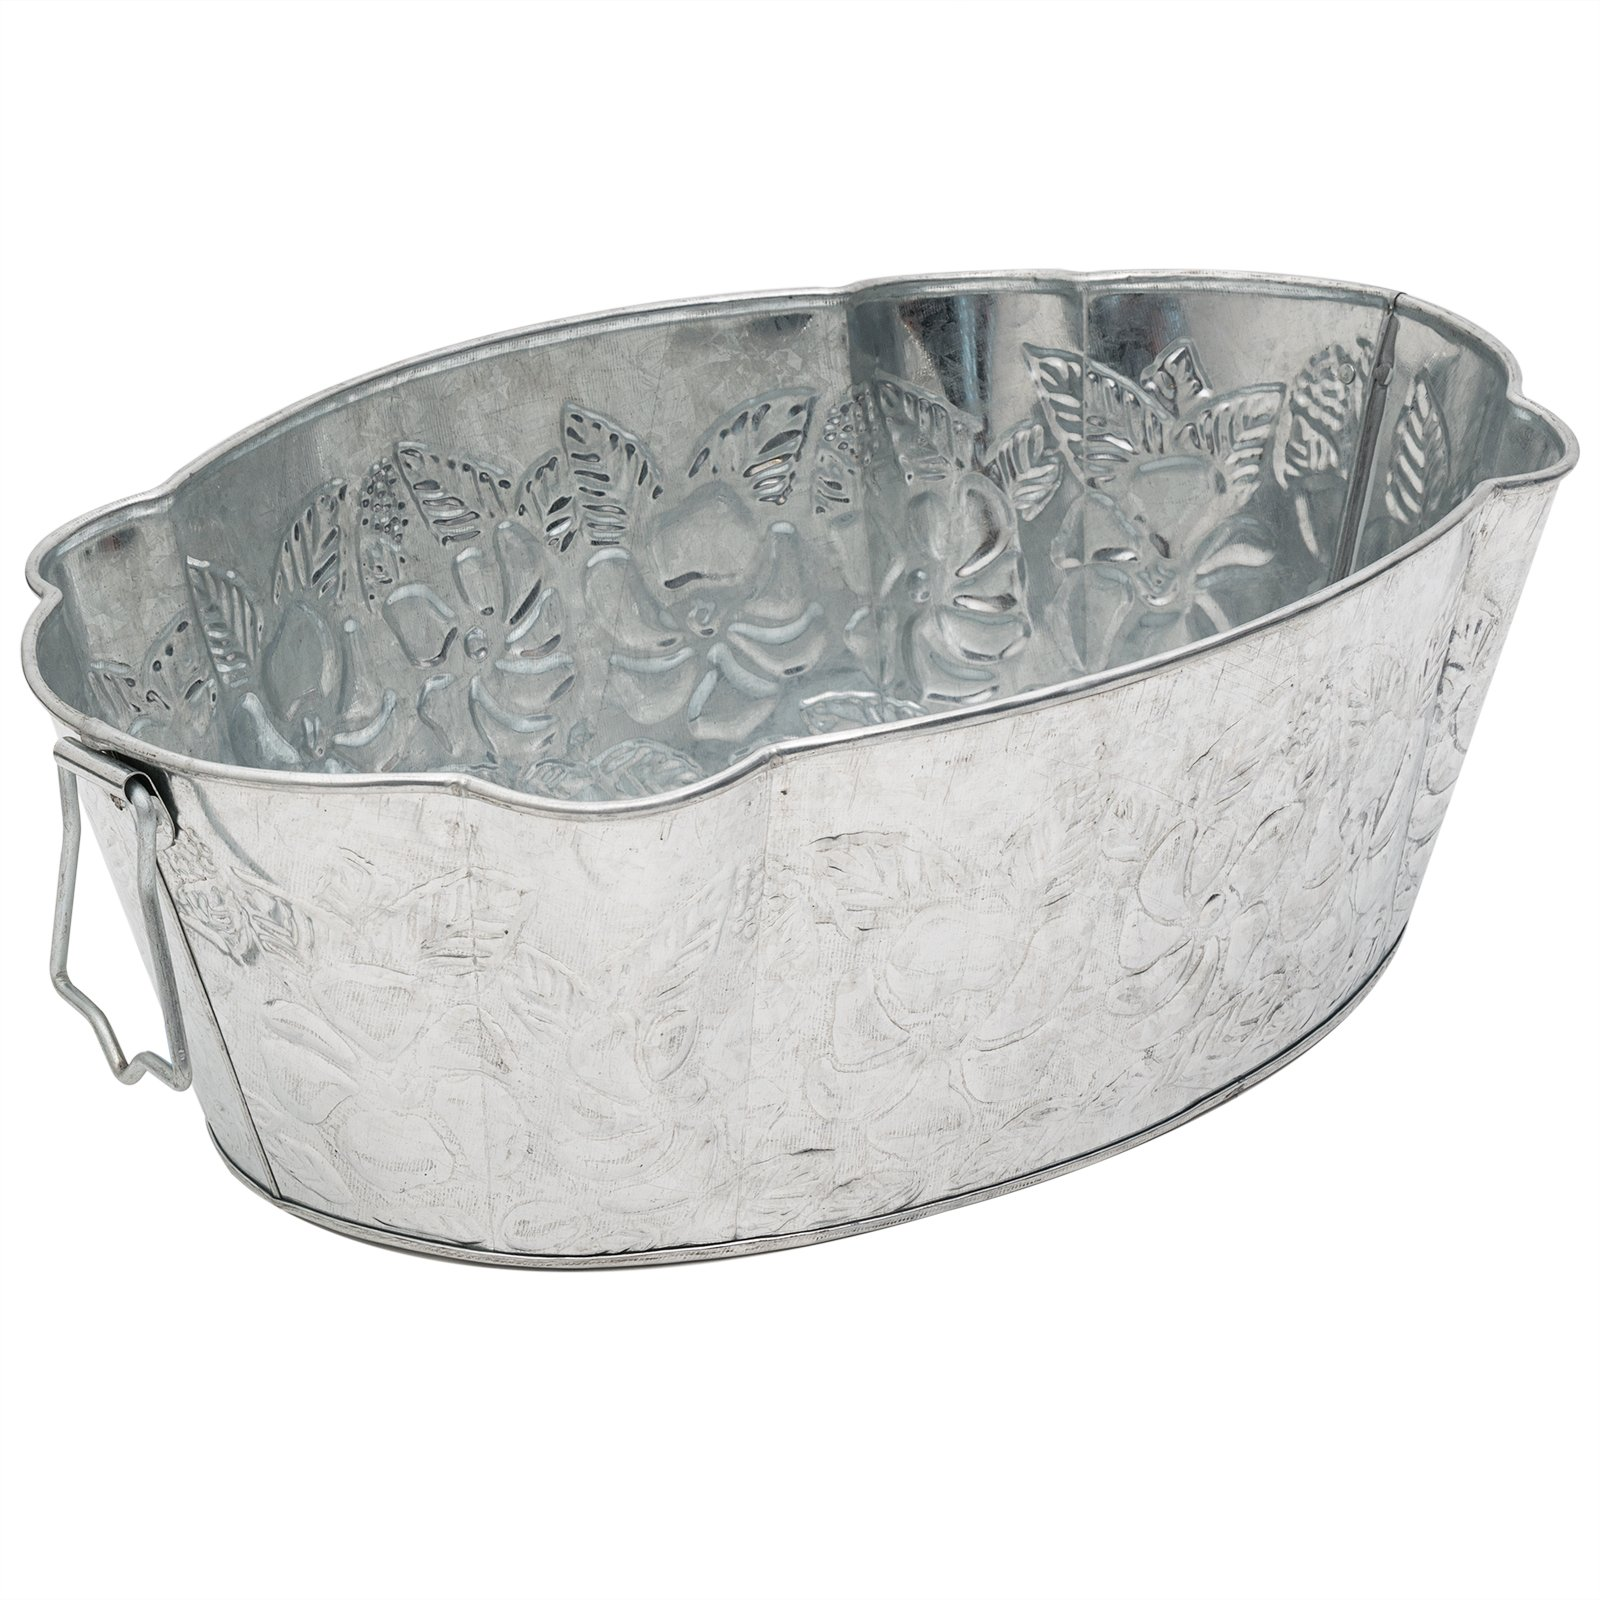 Achla Designs Oval Embossed Galvanized Tub